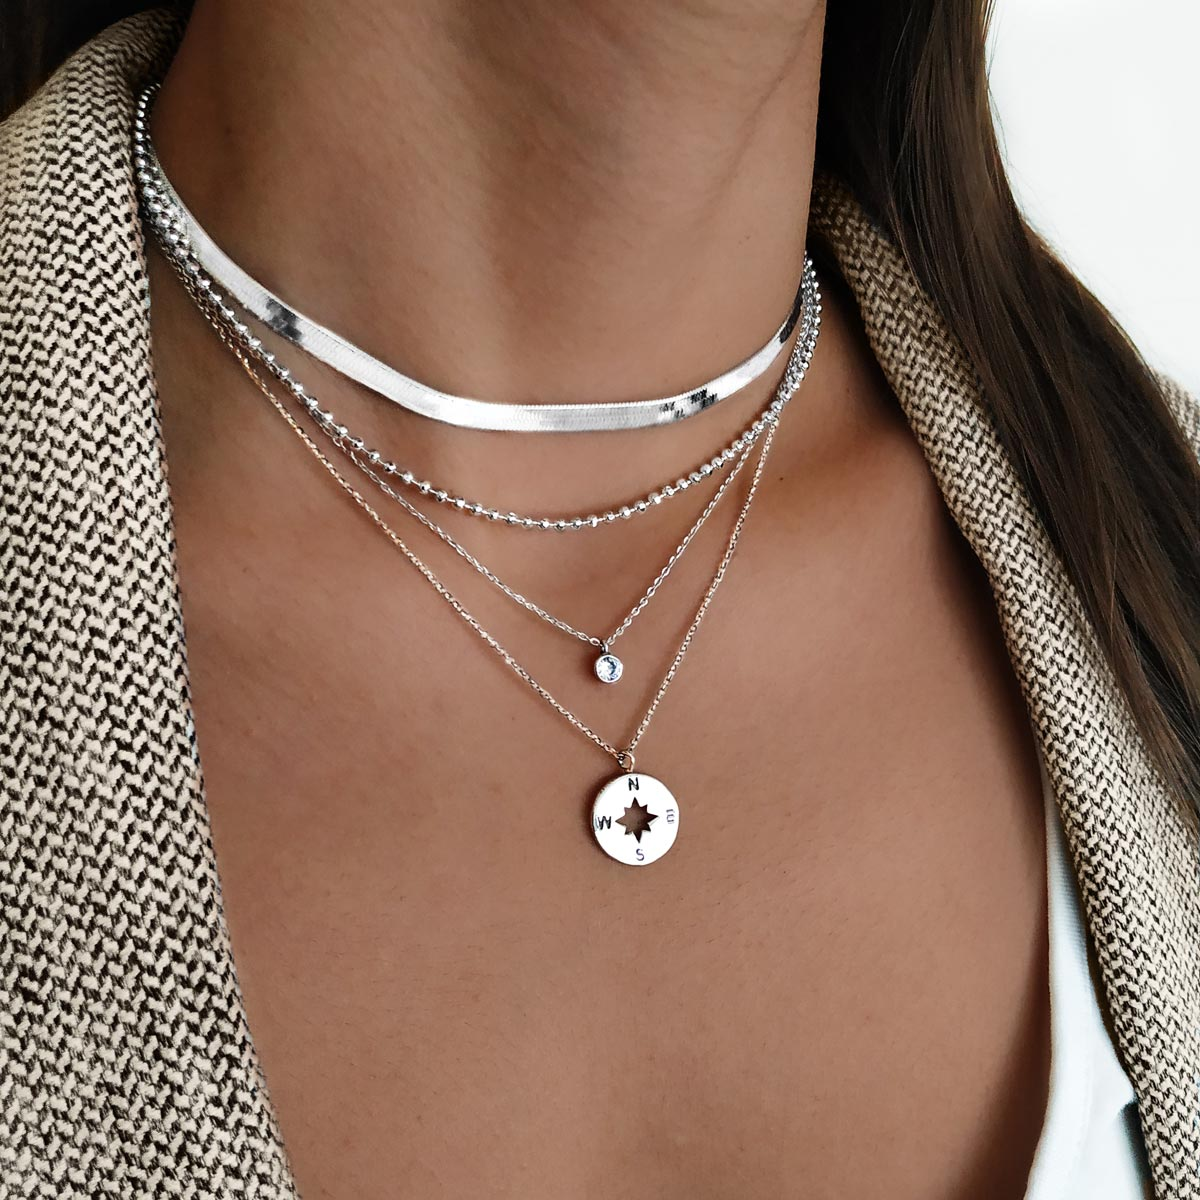 Collar Lisse Plata con los Collares Pebbles, Single Diamond y Rose des Vents